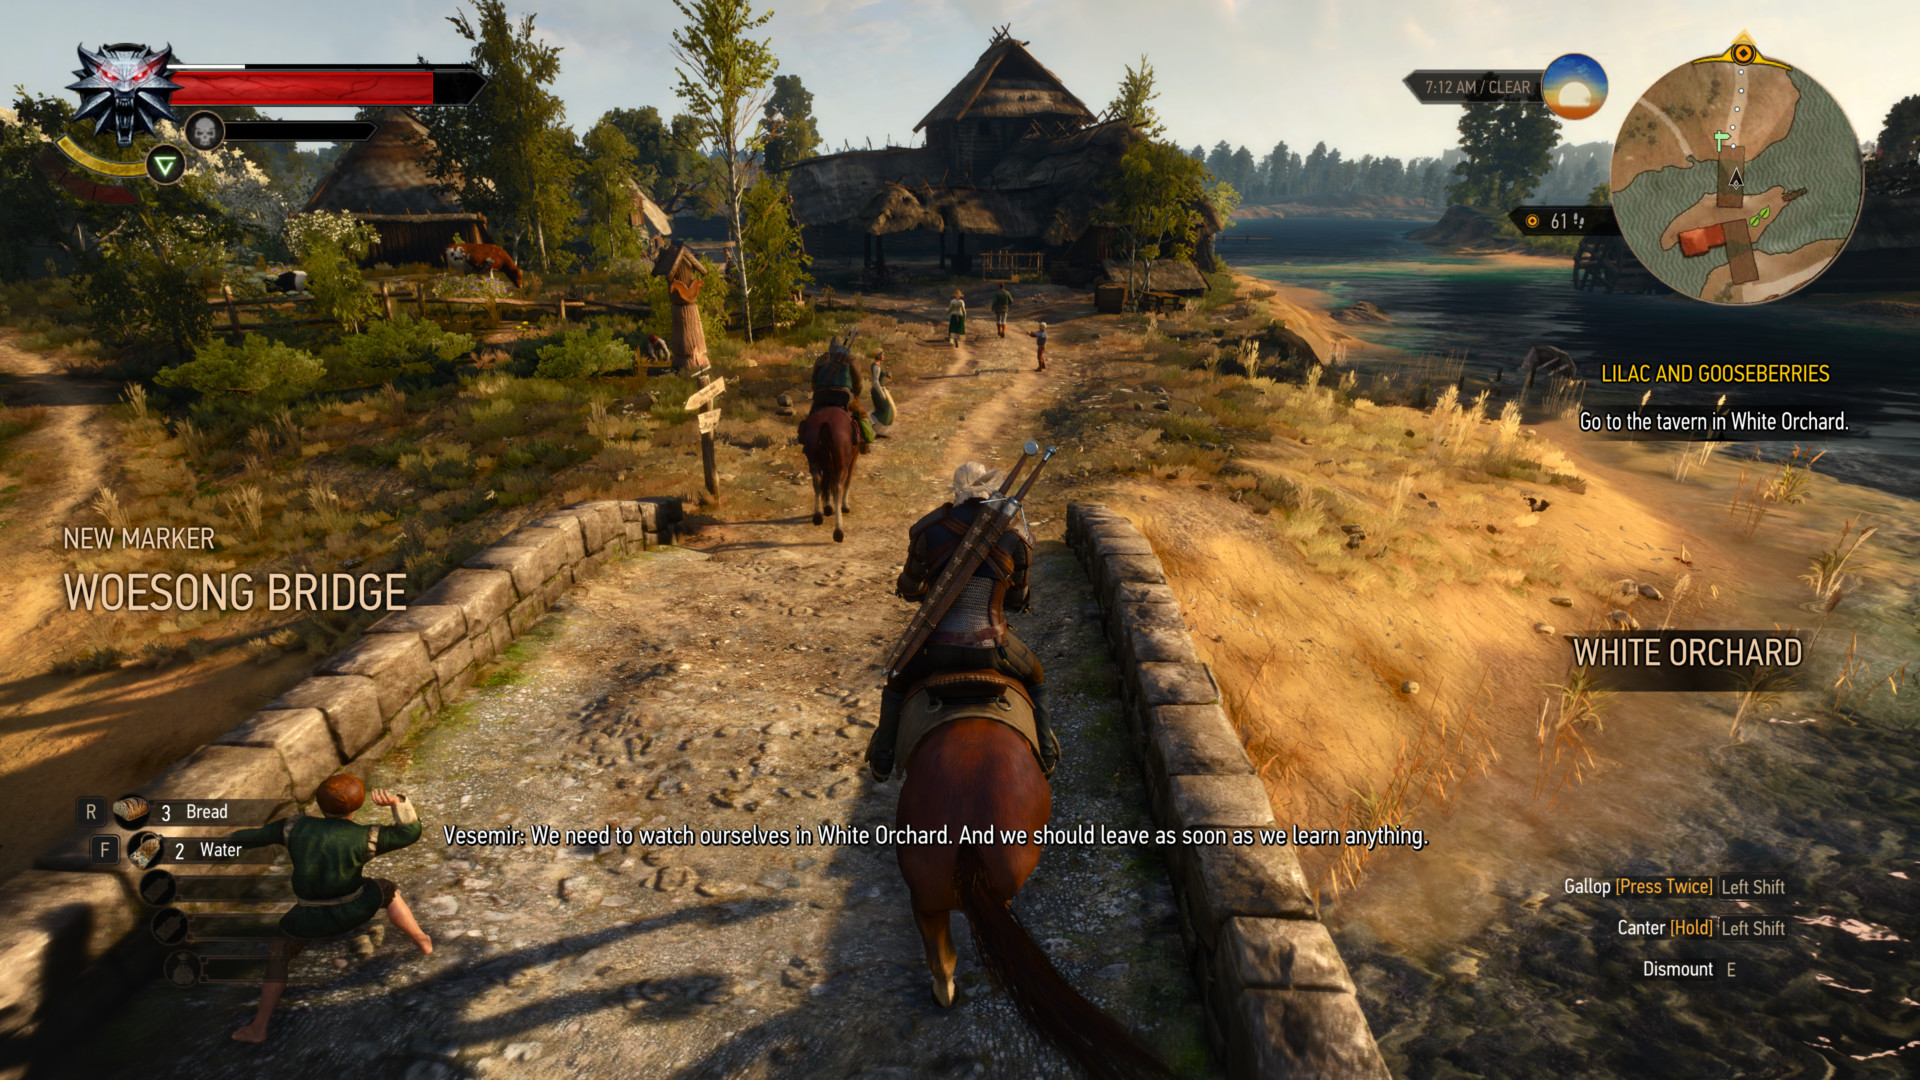 New marker screenshot of The Witcher 3: Wild Hunt video game interface.